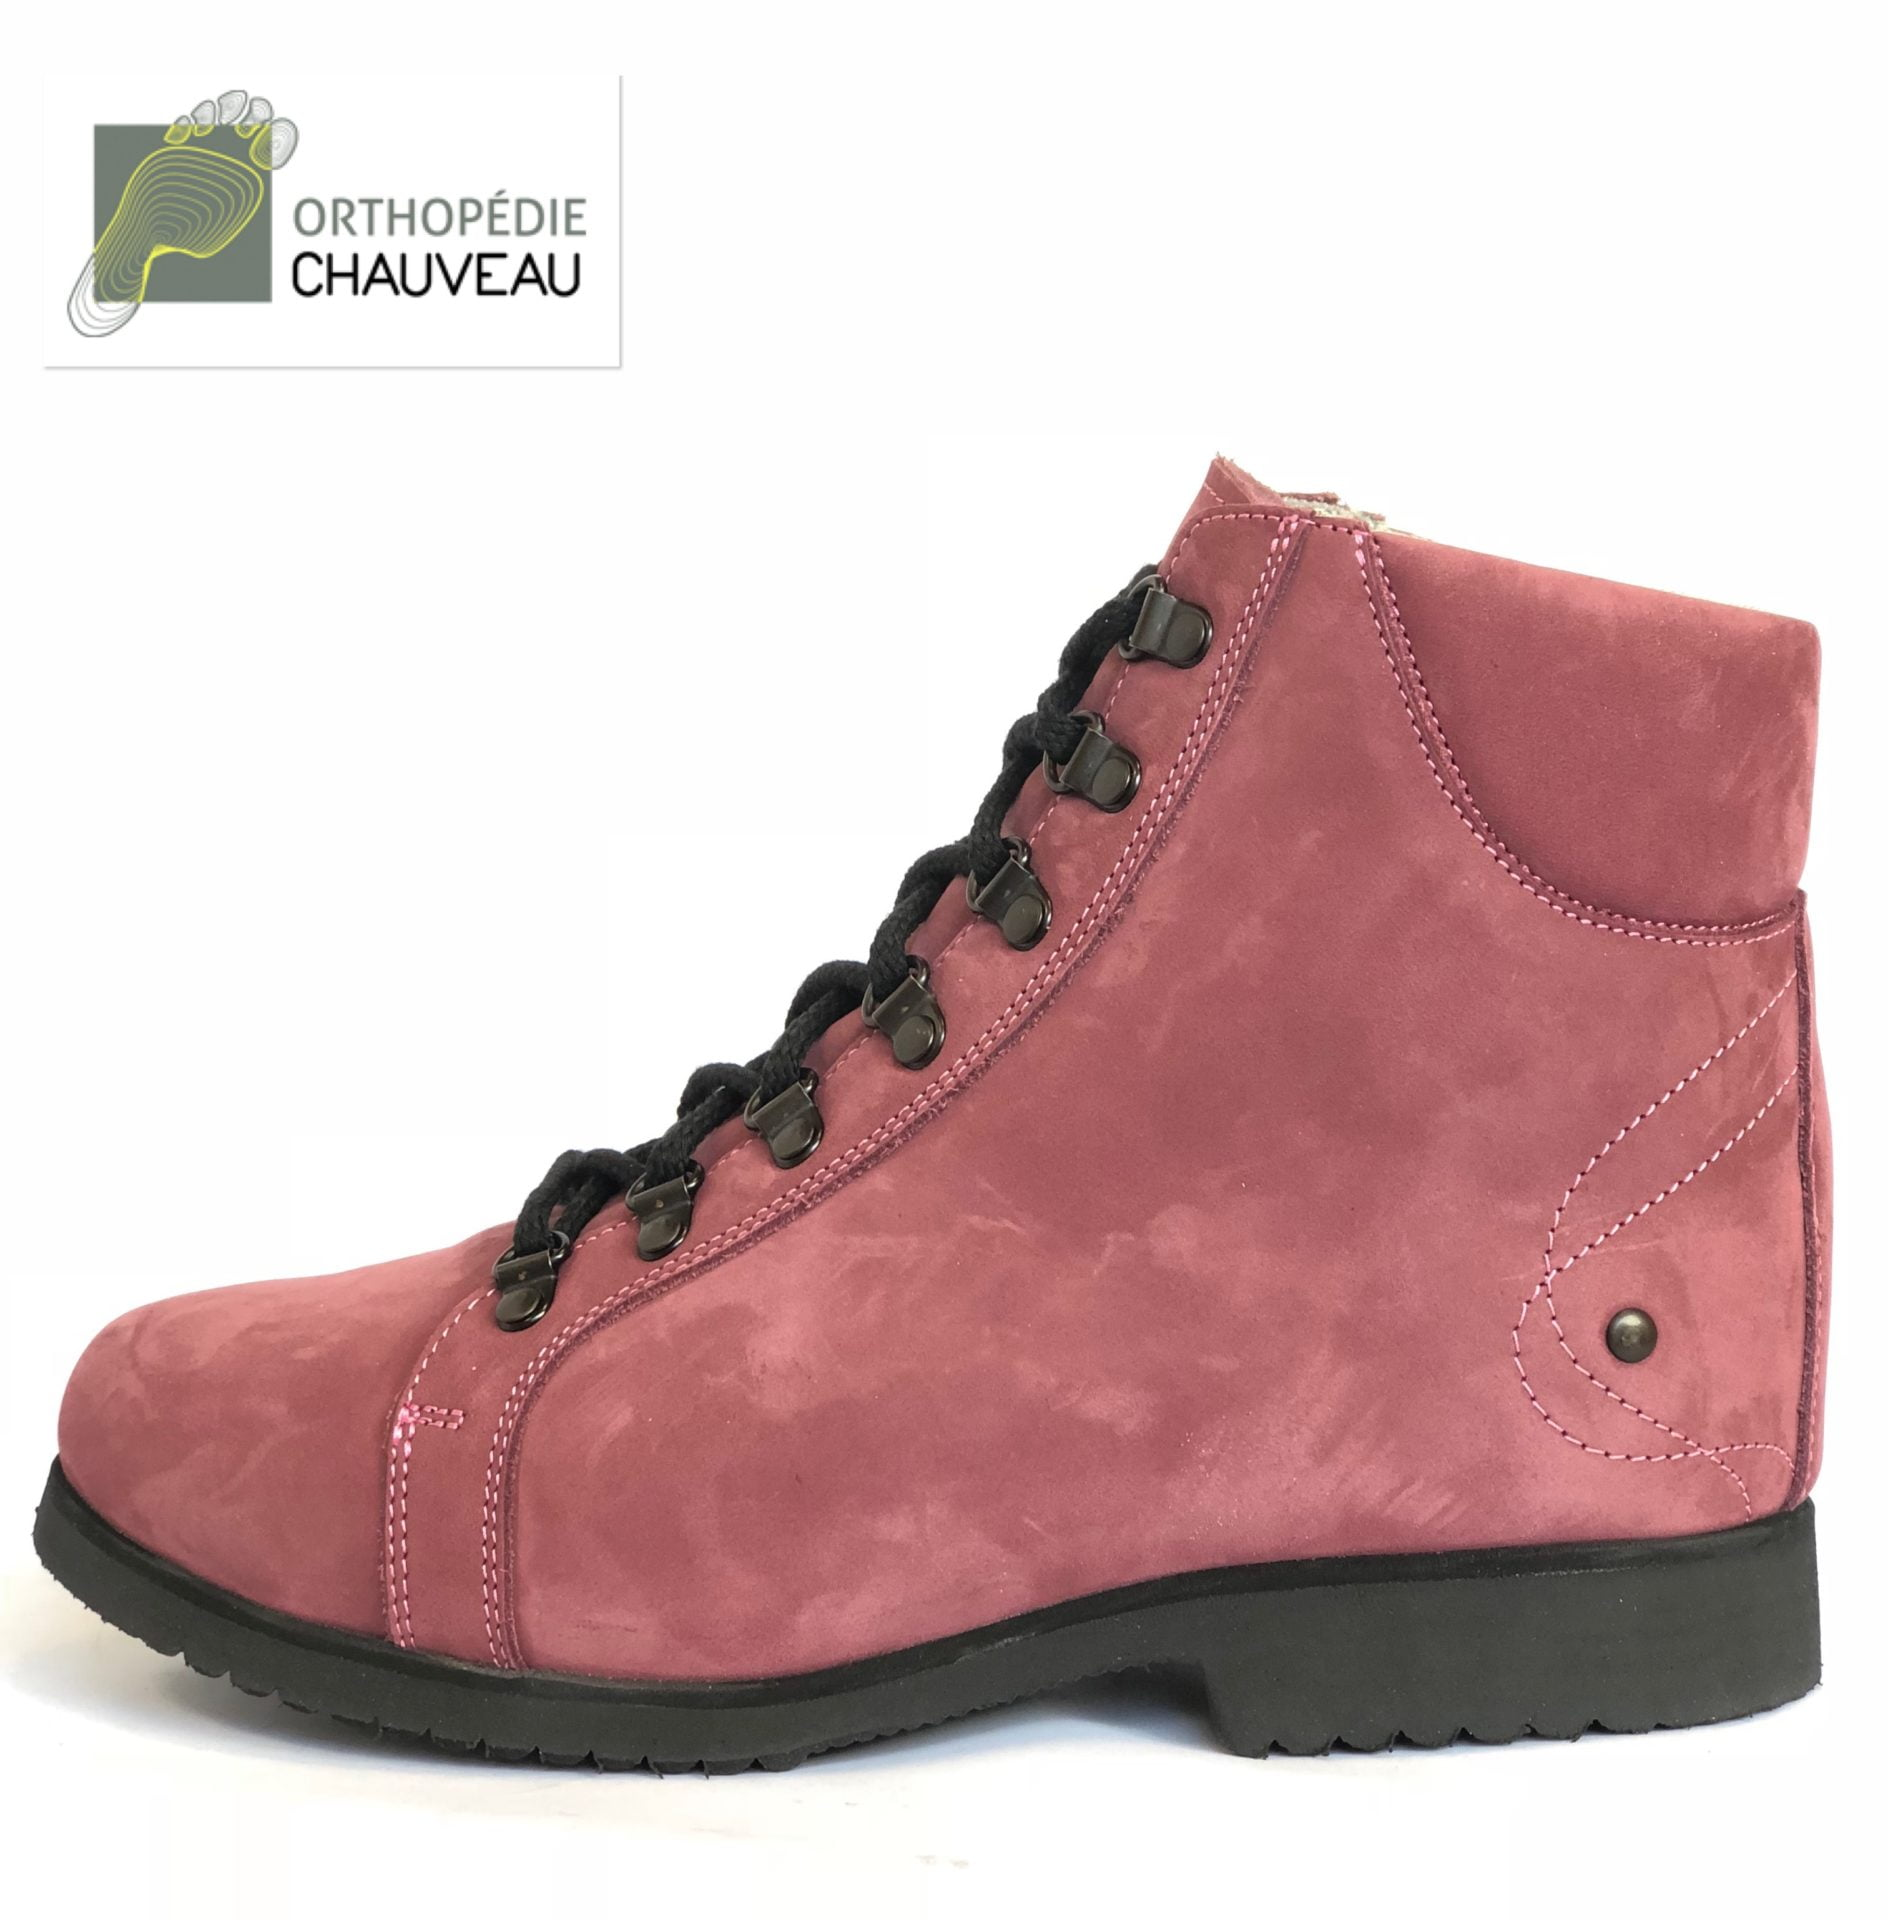 chaussures orthopediques Rennes st malo rose